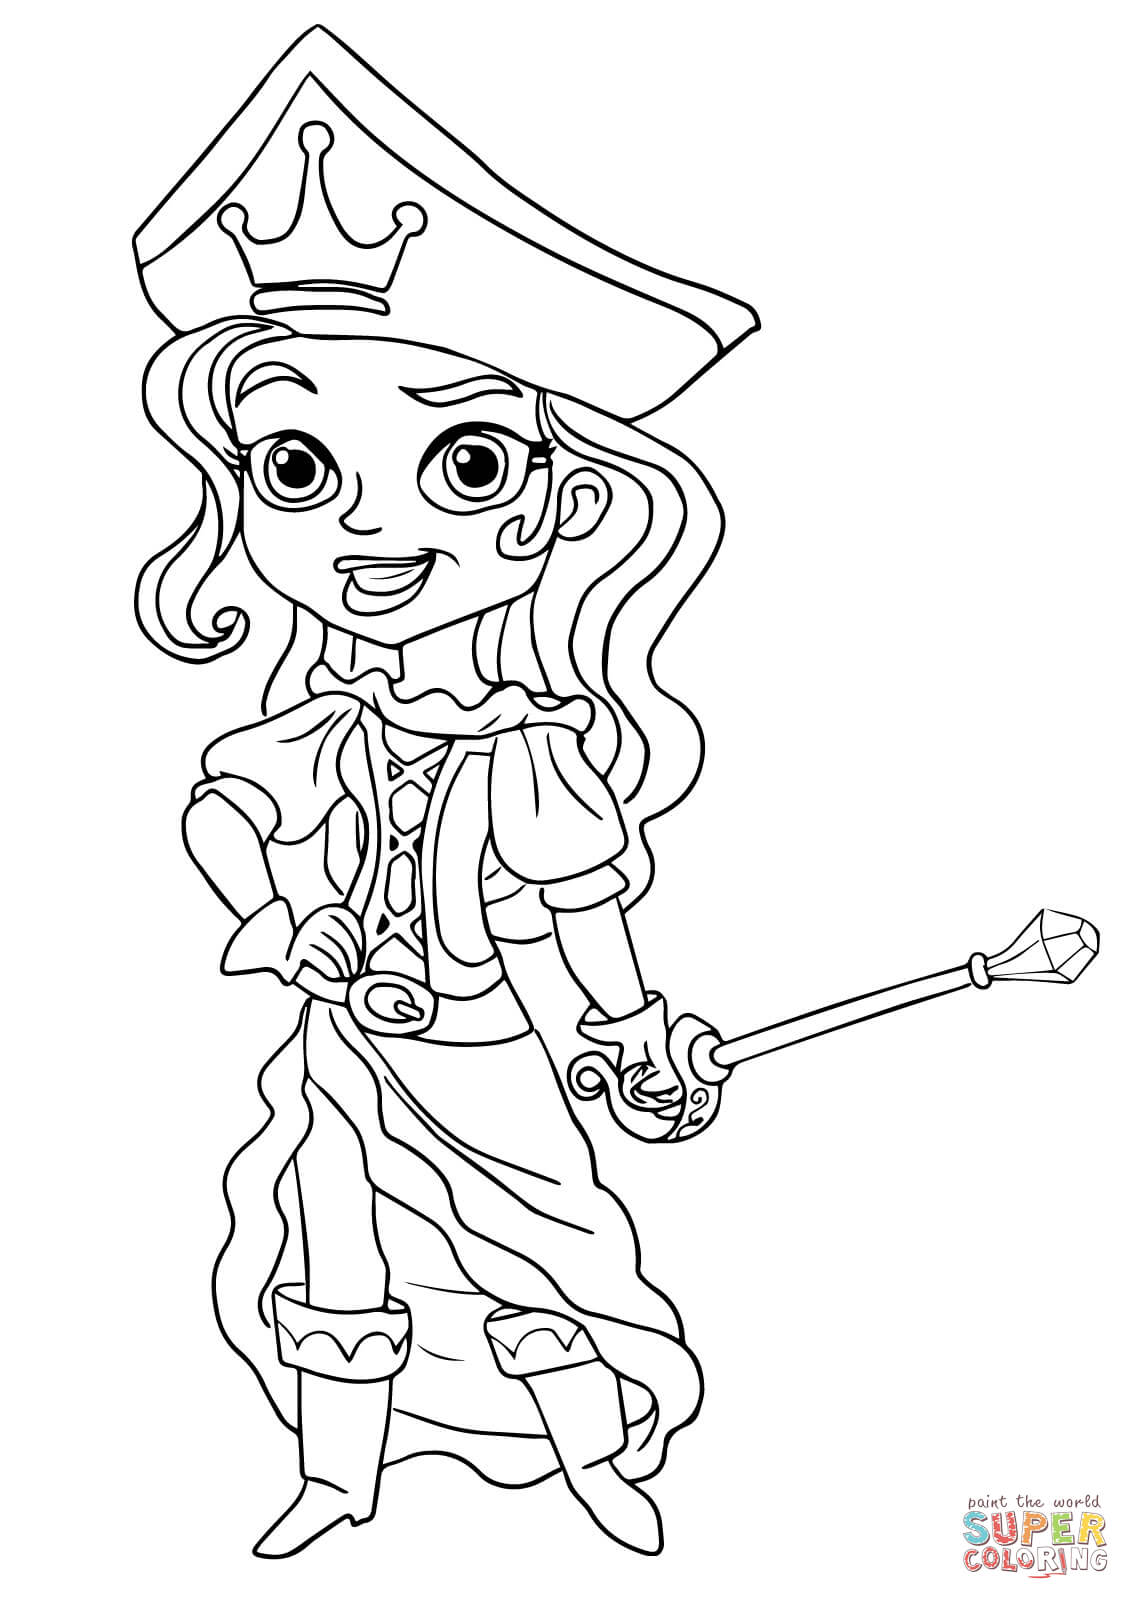 Coloring Pages Girl Pirate Coloring Pages girl pirate coloring page az pages jake and the neverland pirates princess coloring